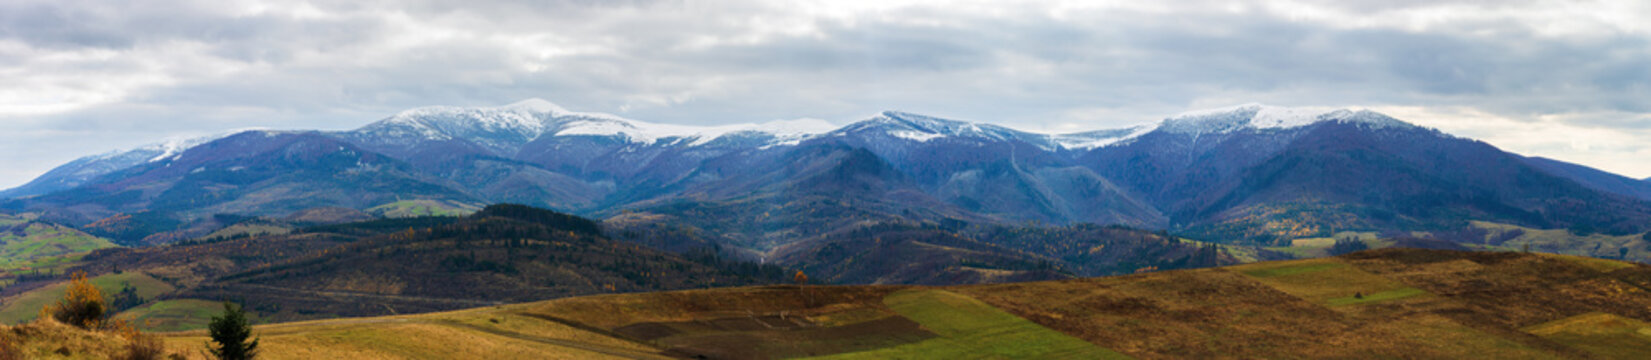 borzhava mountain ridge with snow capped tops. beautiful countryside landscape on an overcast november day. cold and gloomy autumn weather. panoramic view